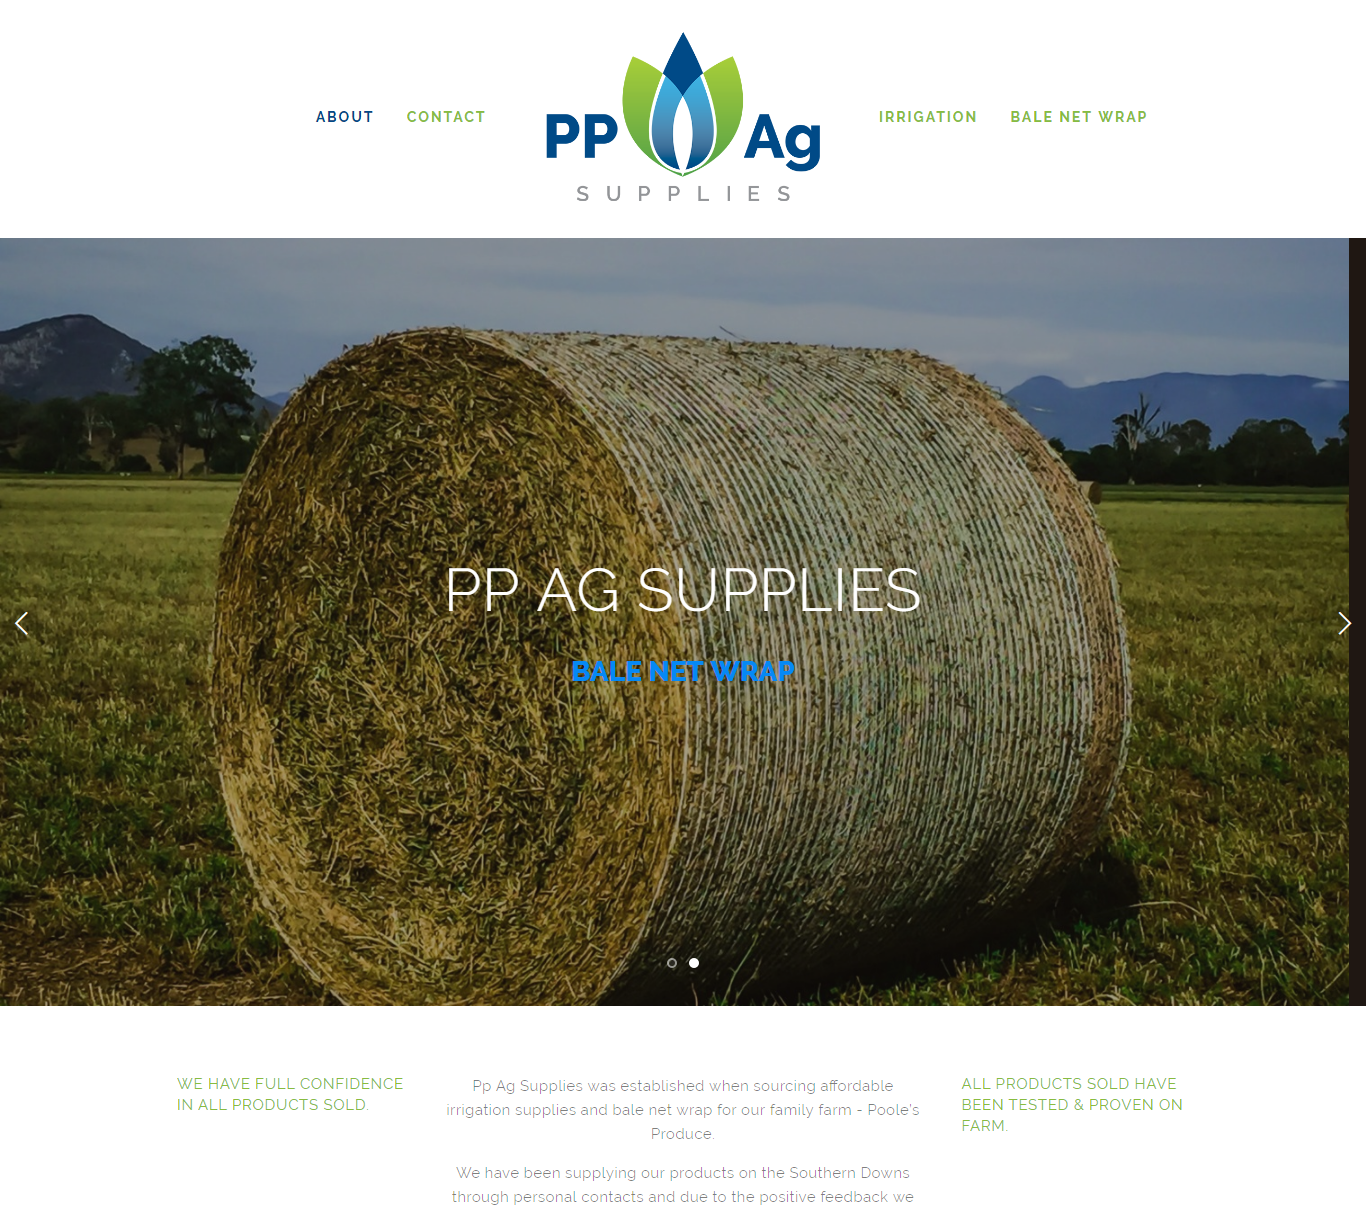 PP Ag Supplies